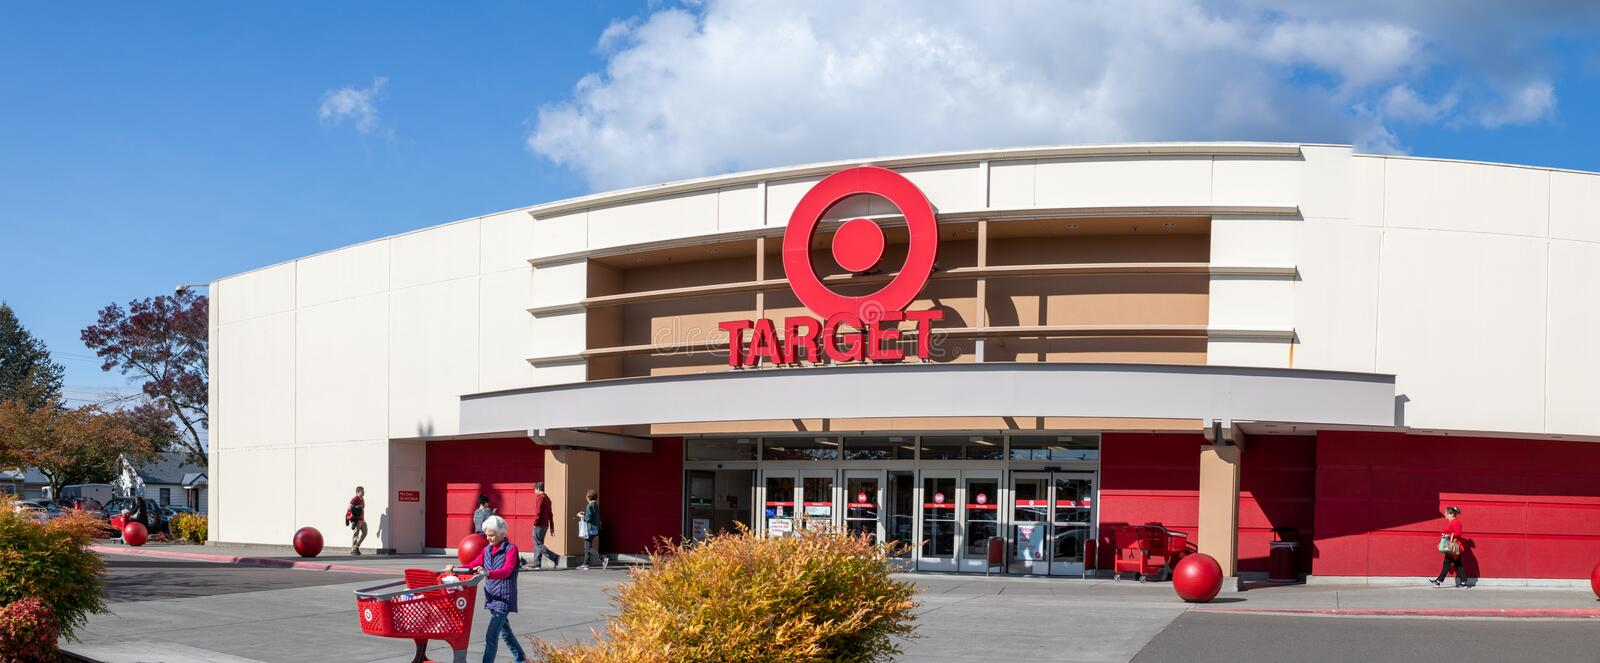 Gate of Marshalls Shopping mall, American off-price department stores in Oregon, USAc. Beaverton, Oregon - Oct 7, 2019 : Exterior view of a Target retail store stock image